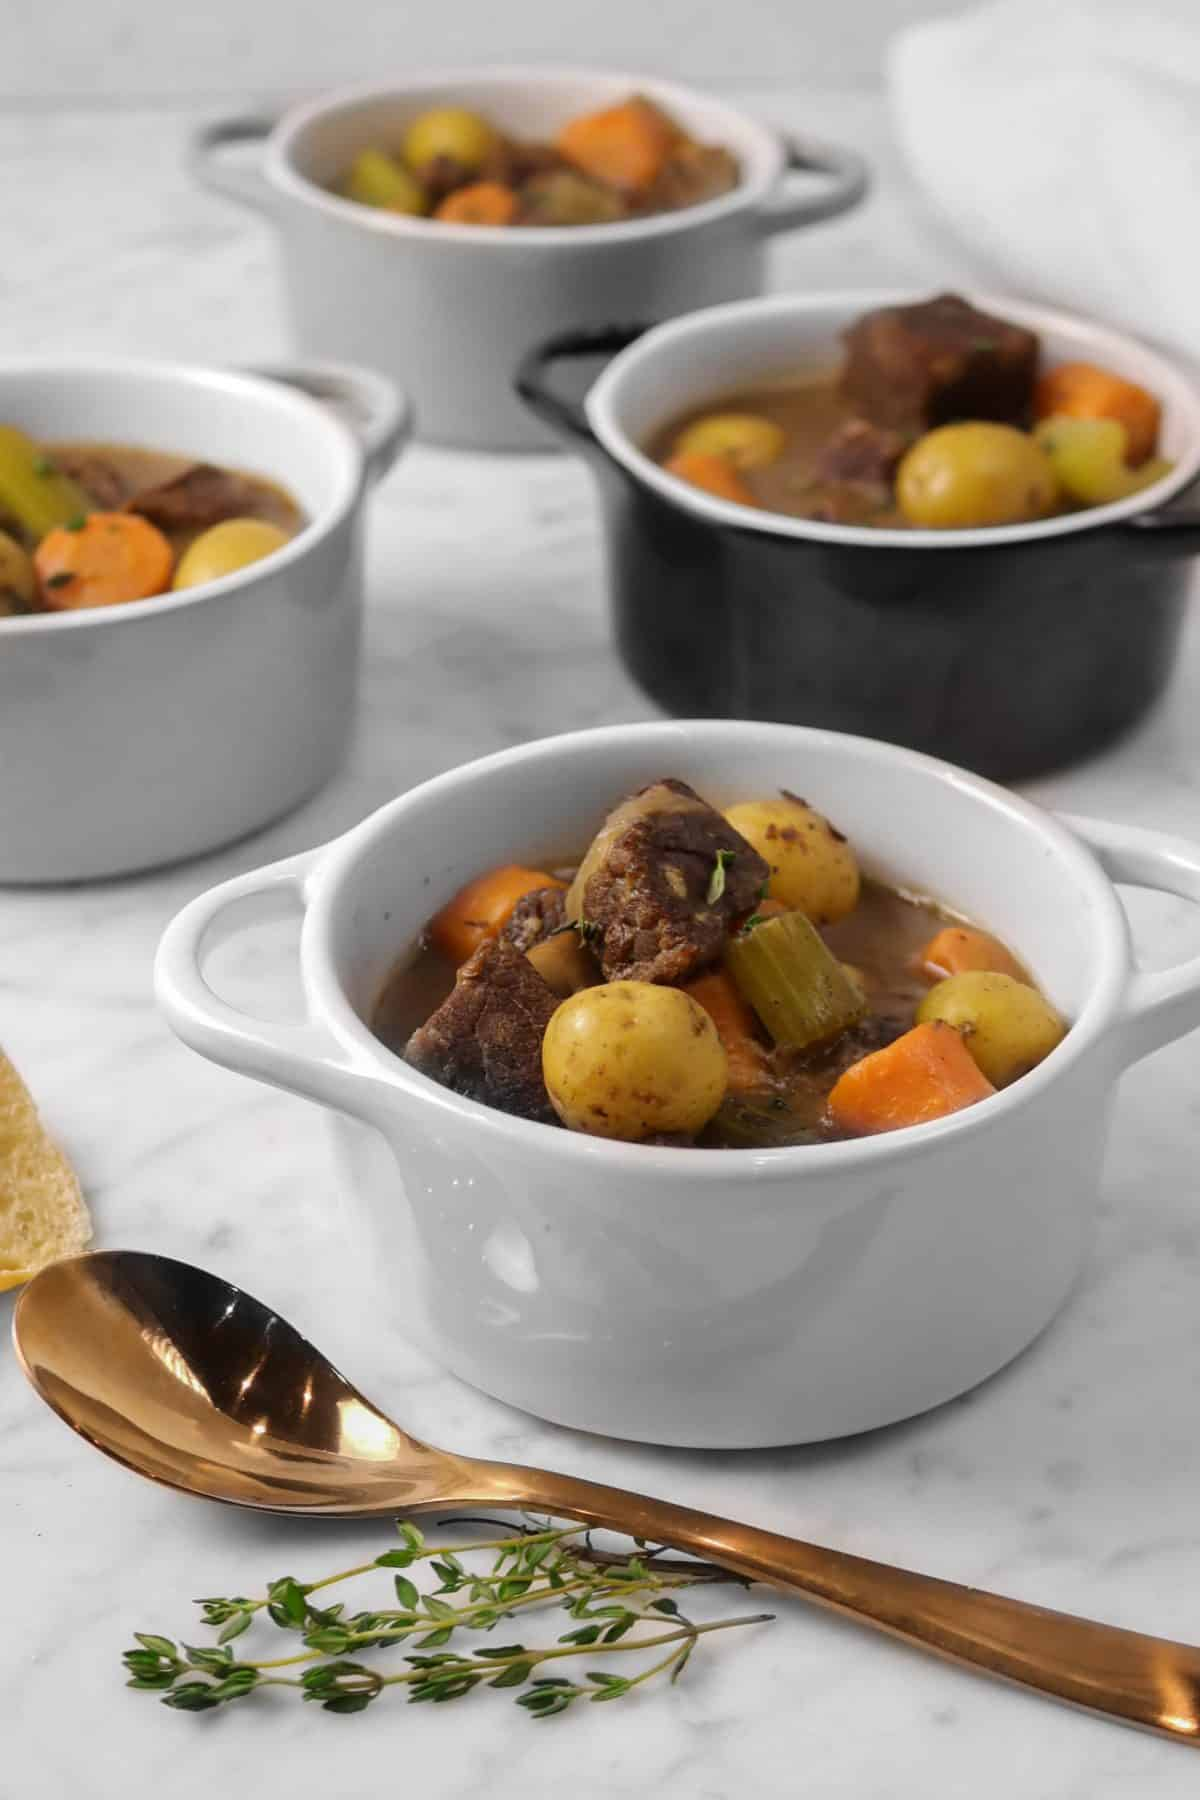 four bowls of beef stew with a copper spoon and thyme sprigs